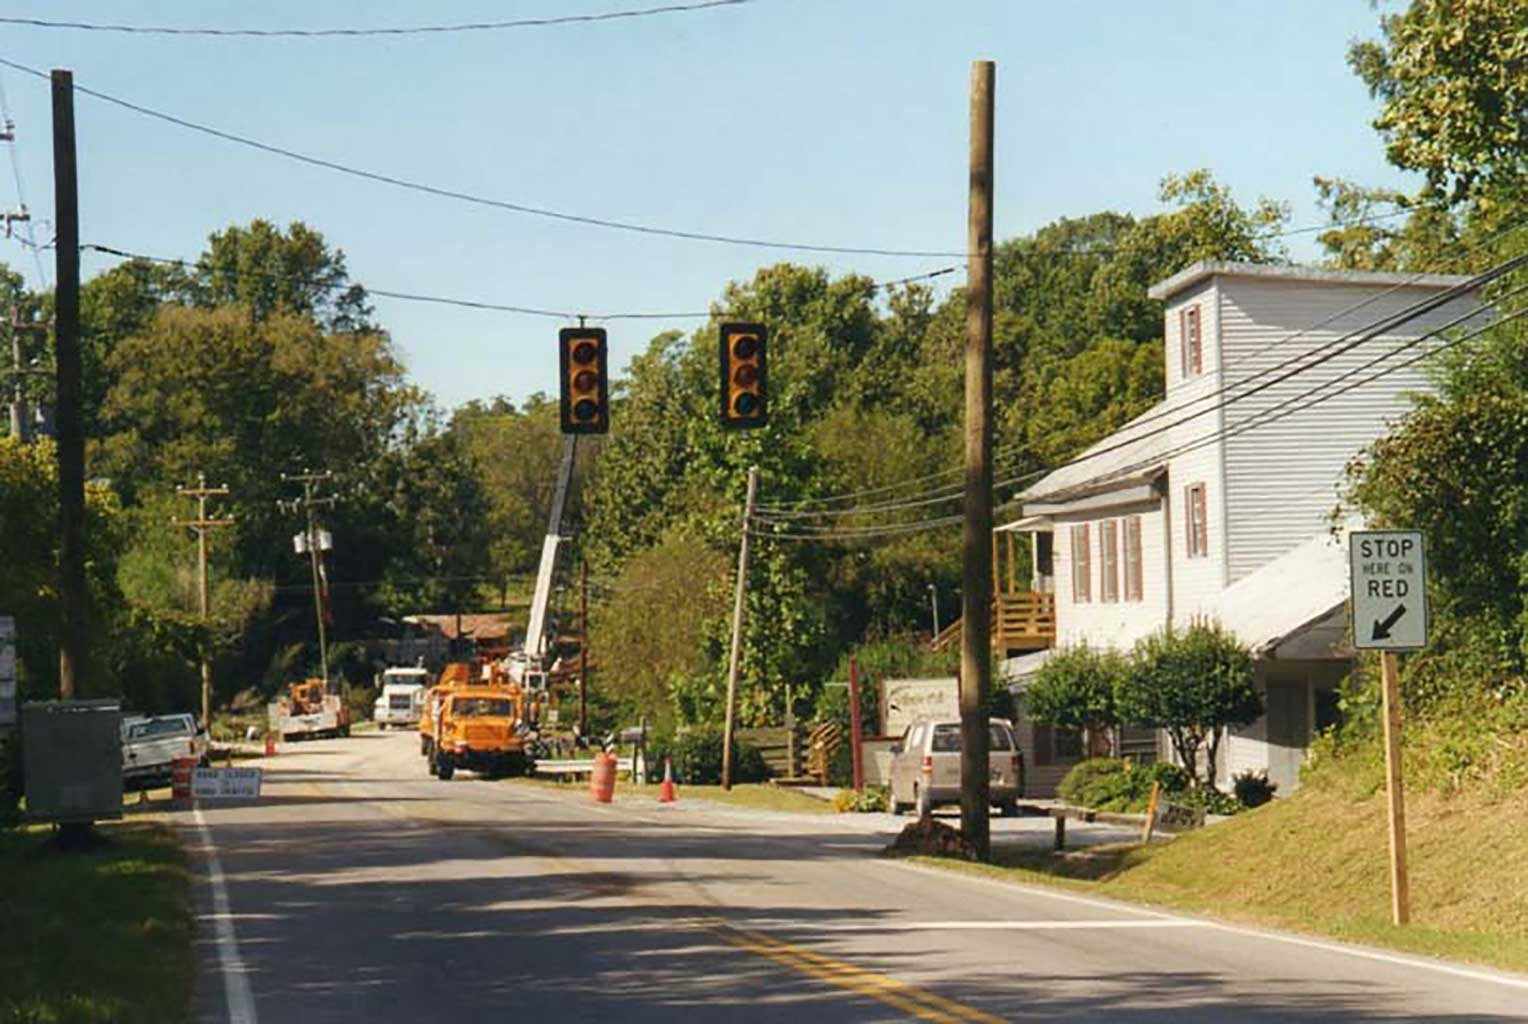 first-and-only-stop-light-in-chuckatuck-3-24-99-img329